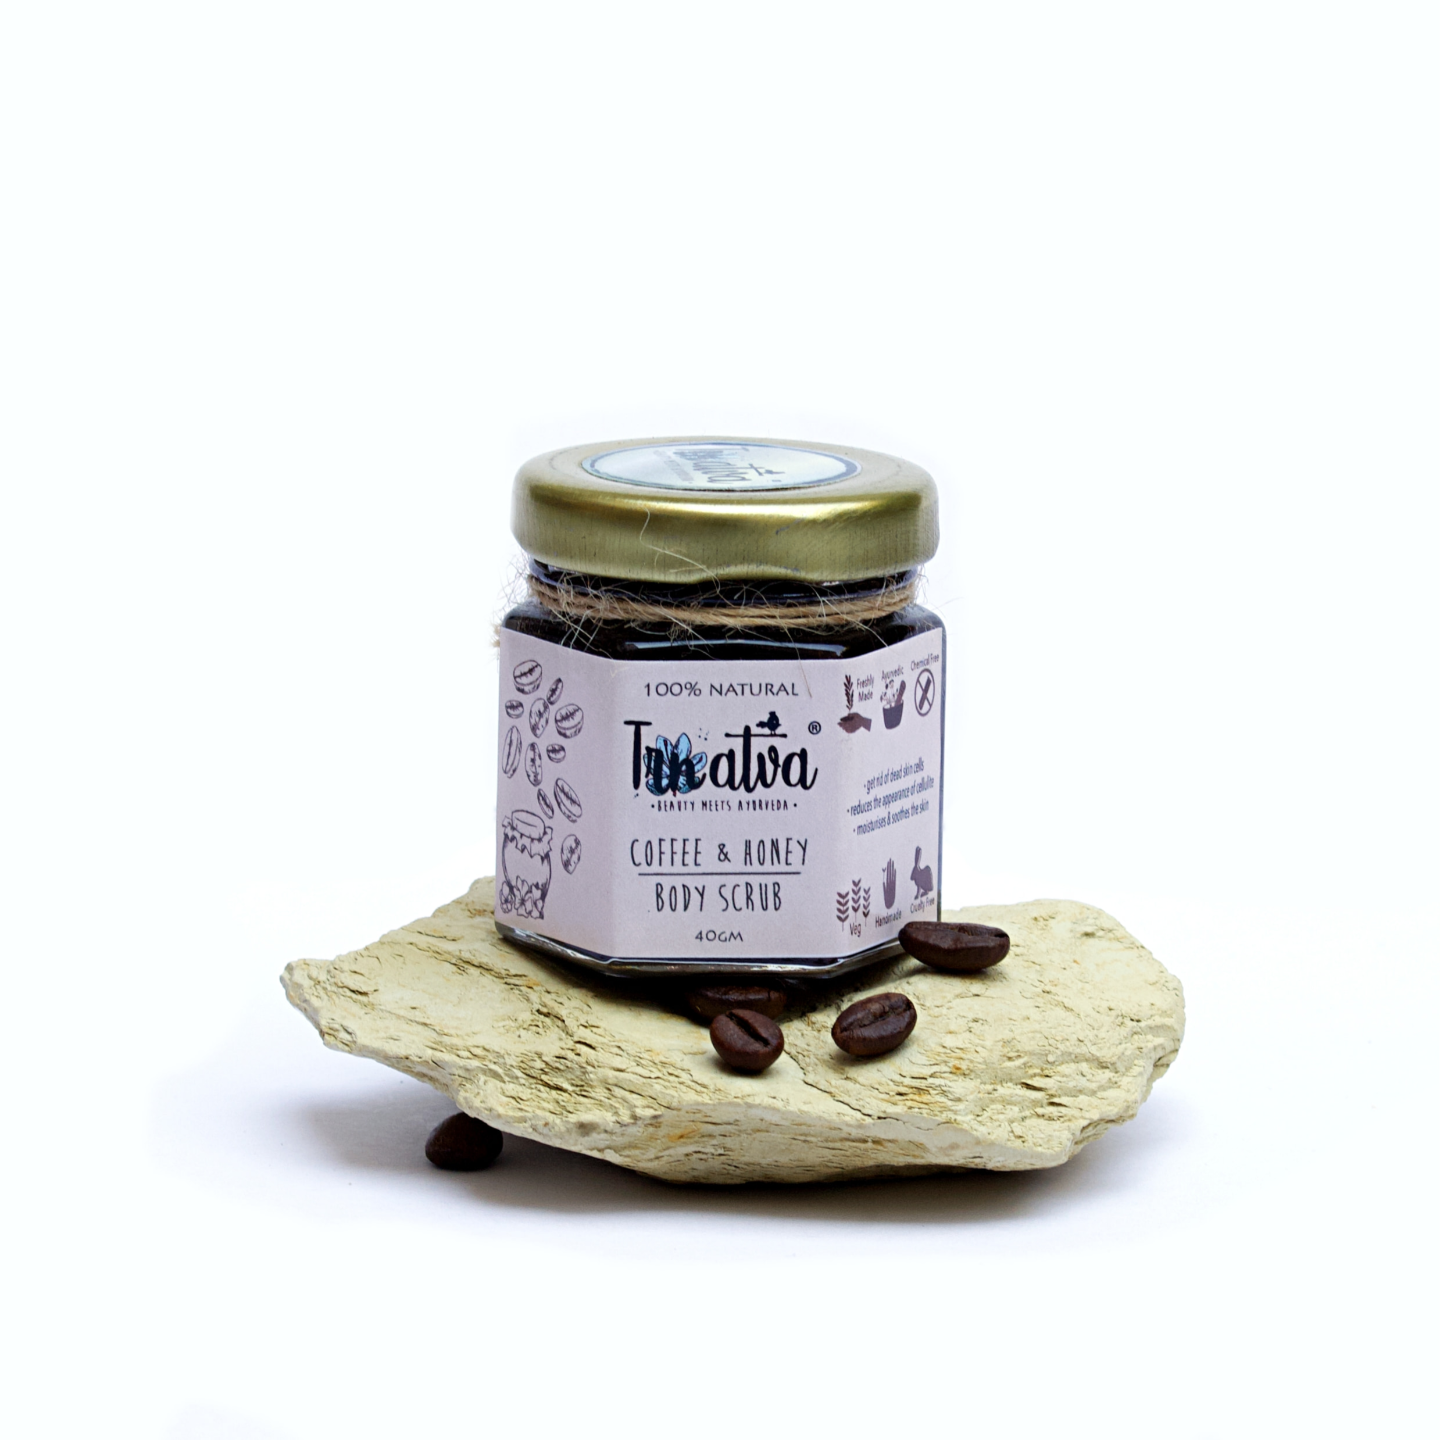 Coffee & Honey Body Scrub - 40g